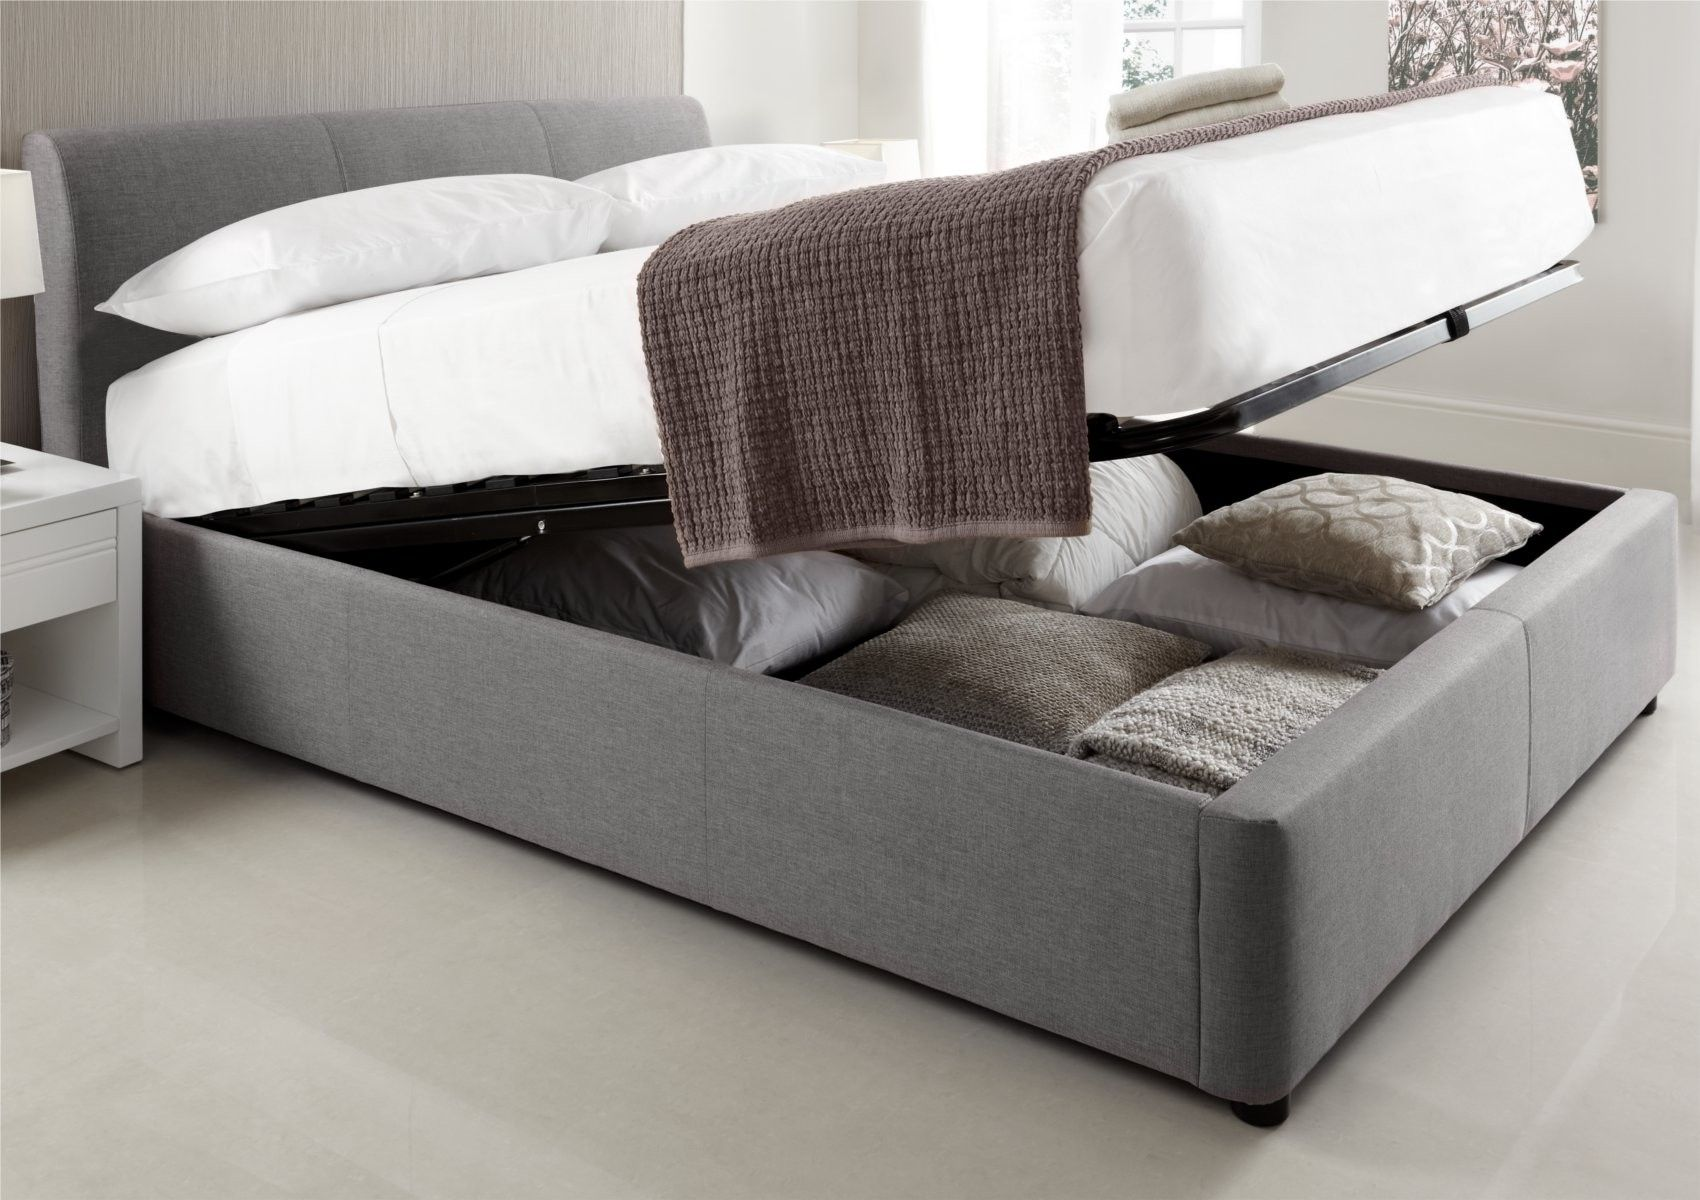 Serenity upholstered ottoman storage bed grey king for Upholstered king bed with storage